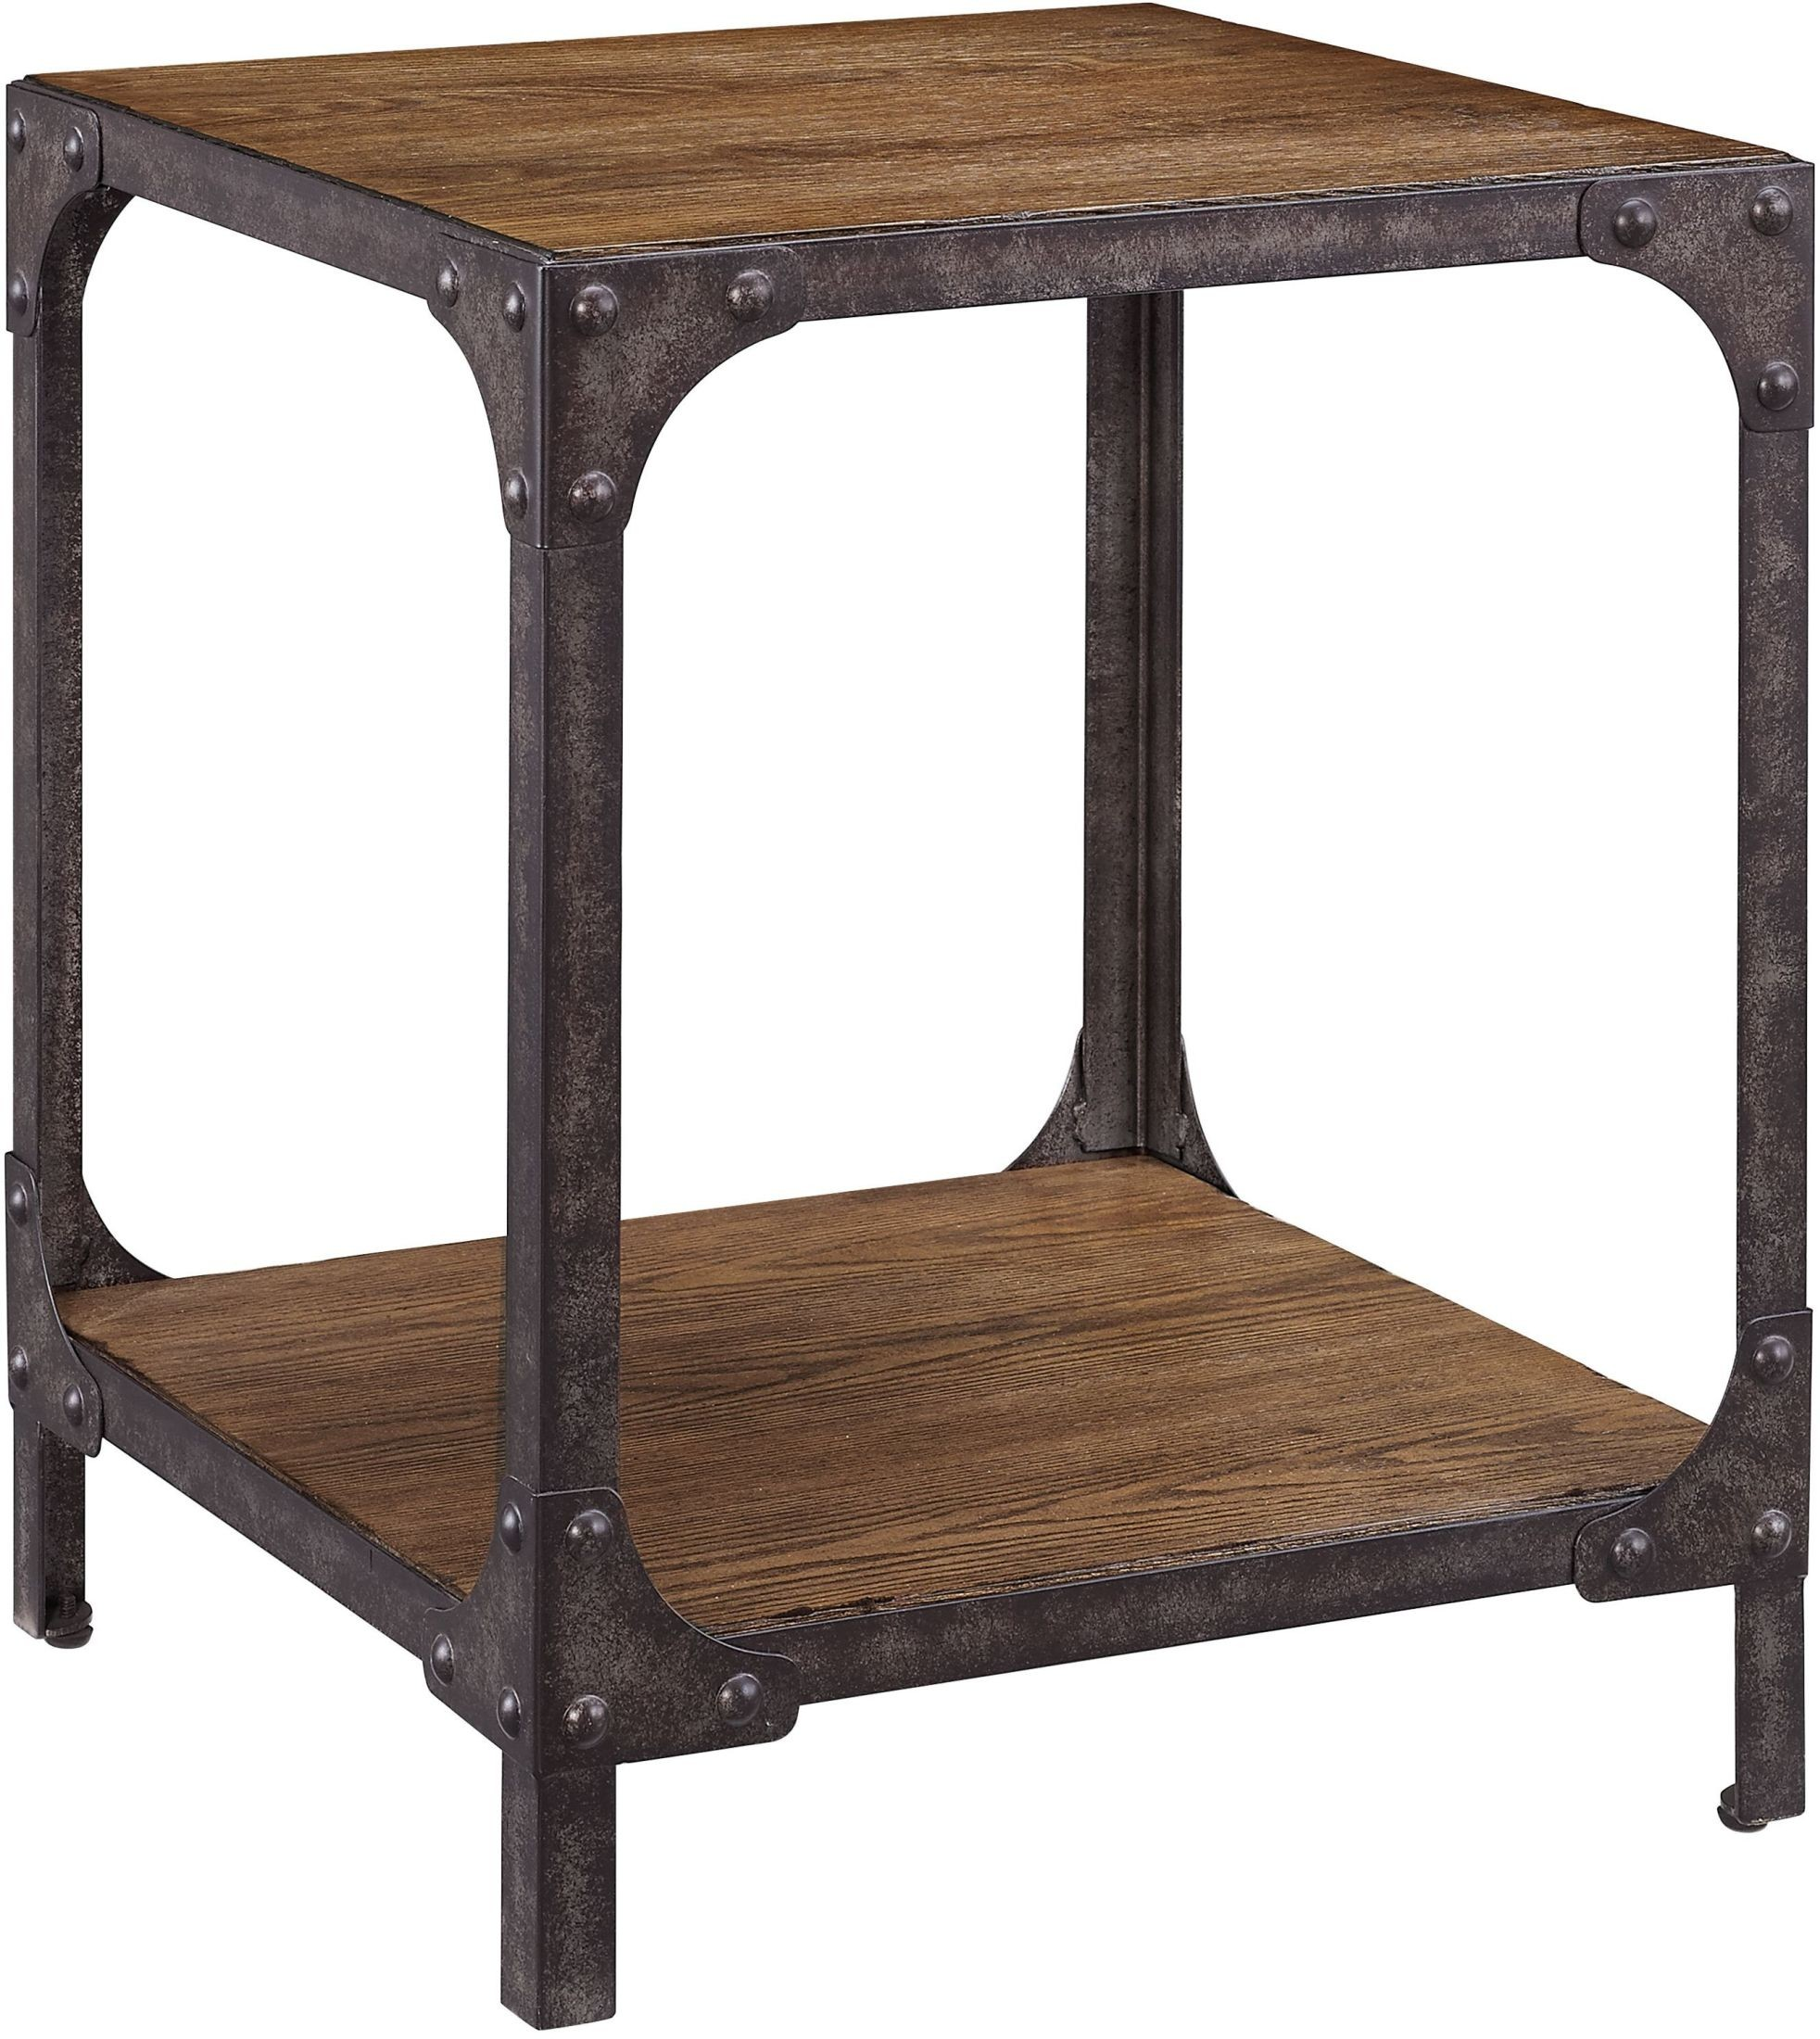 irwin wood and metal end table from pulaski coleman furniture. Black Bedroom Furniture Sets. Home Design Ideas